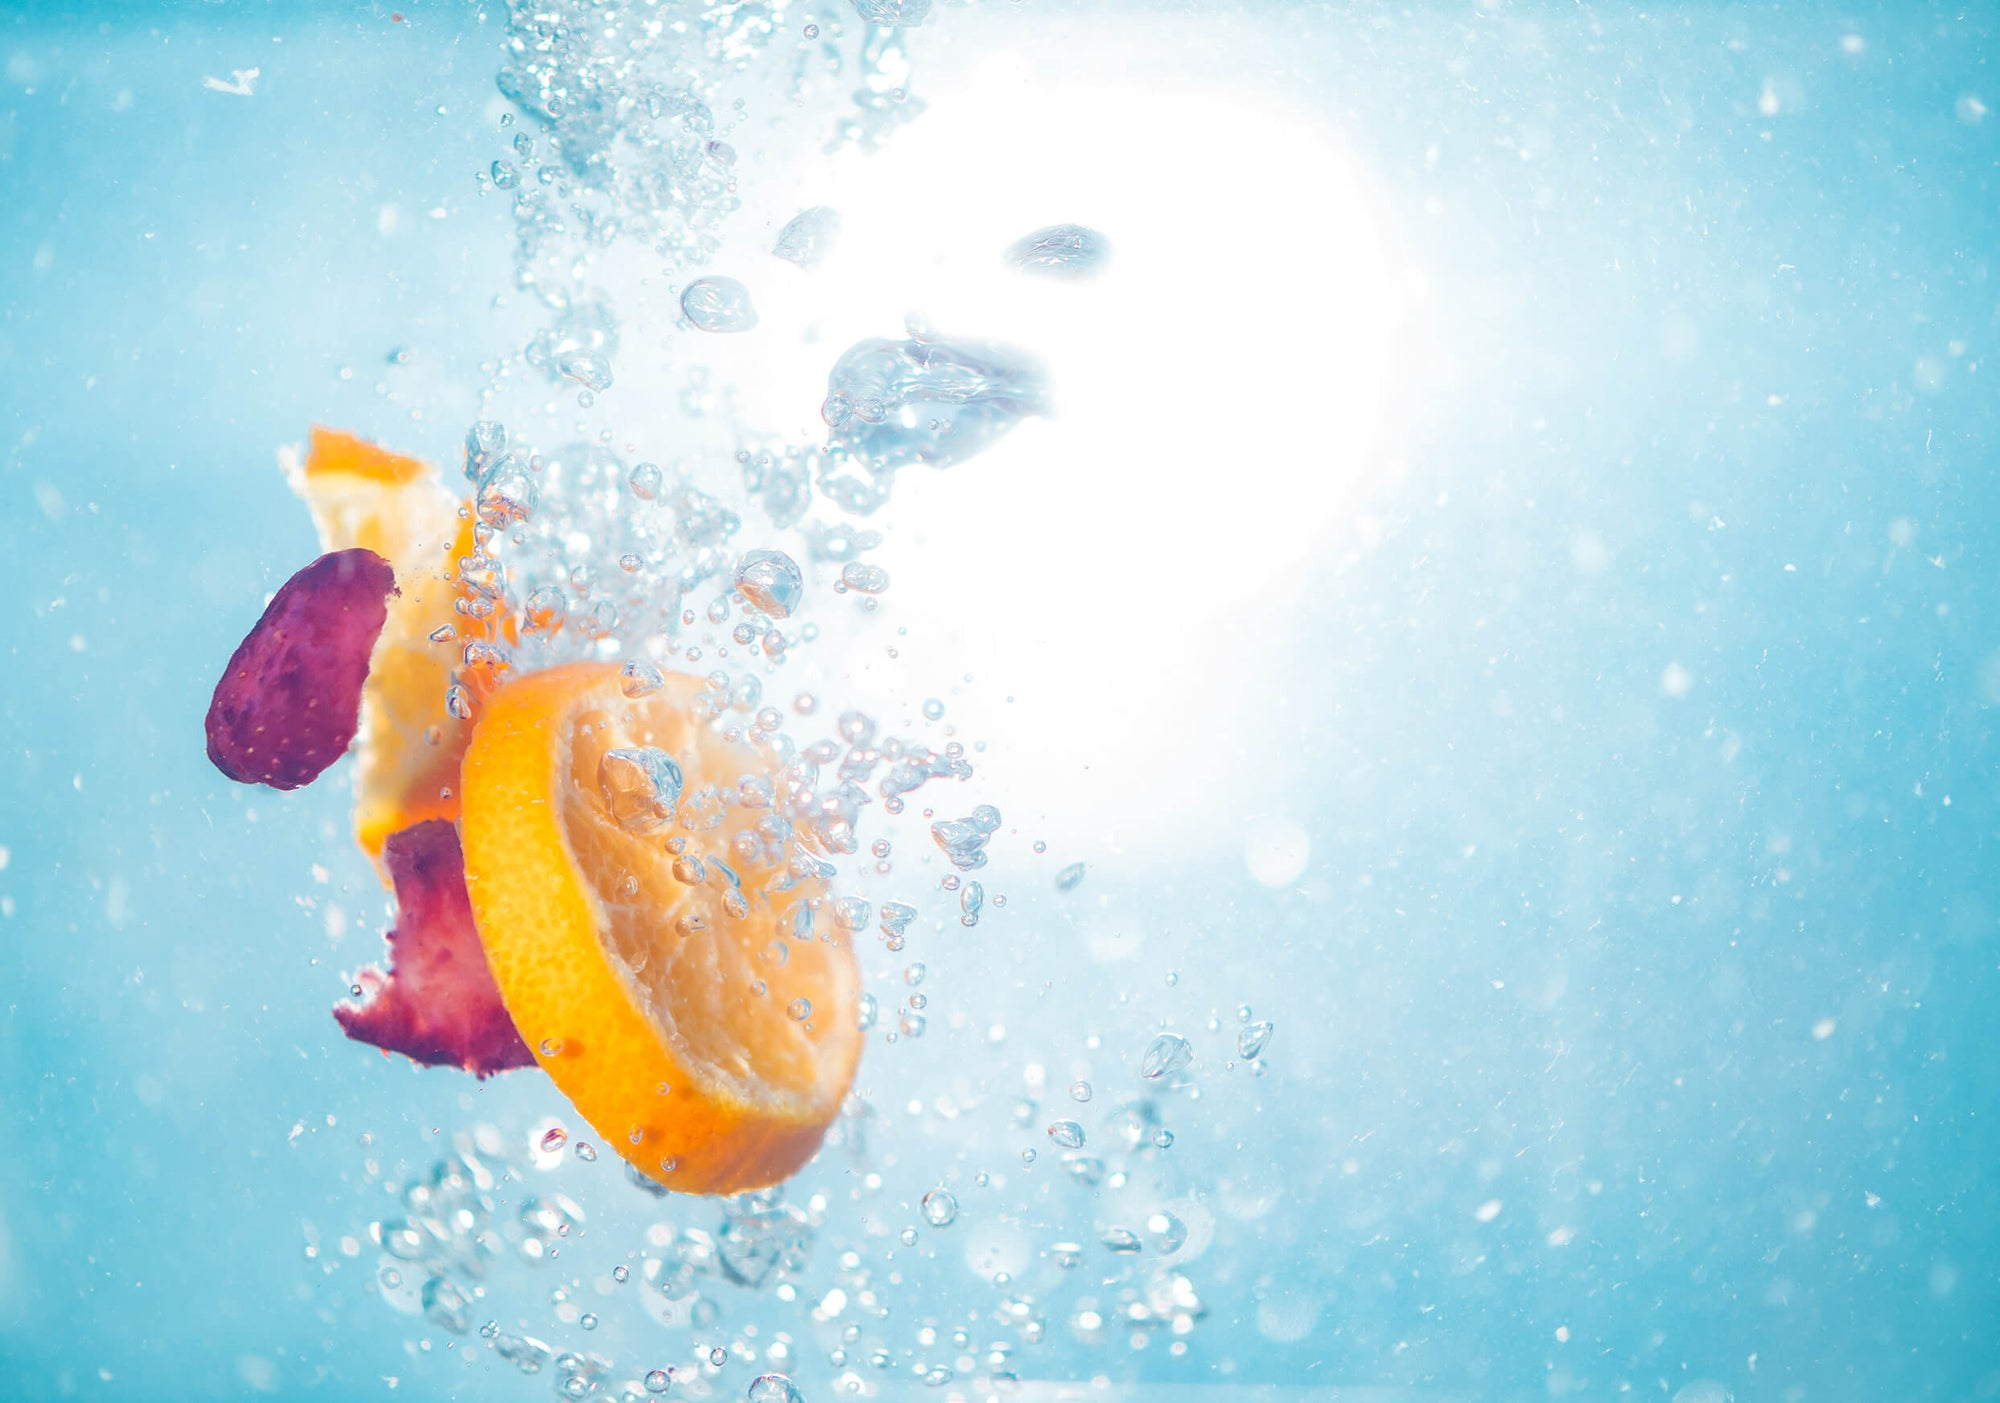 Vitamin C and the immune system represented by fruit in water